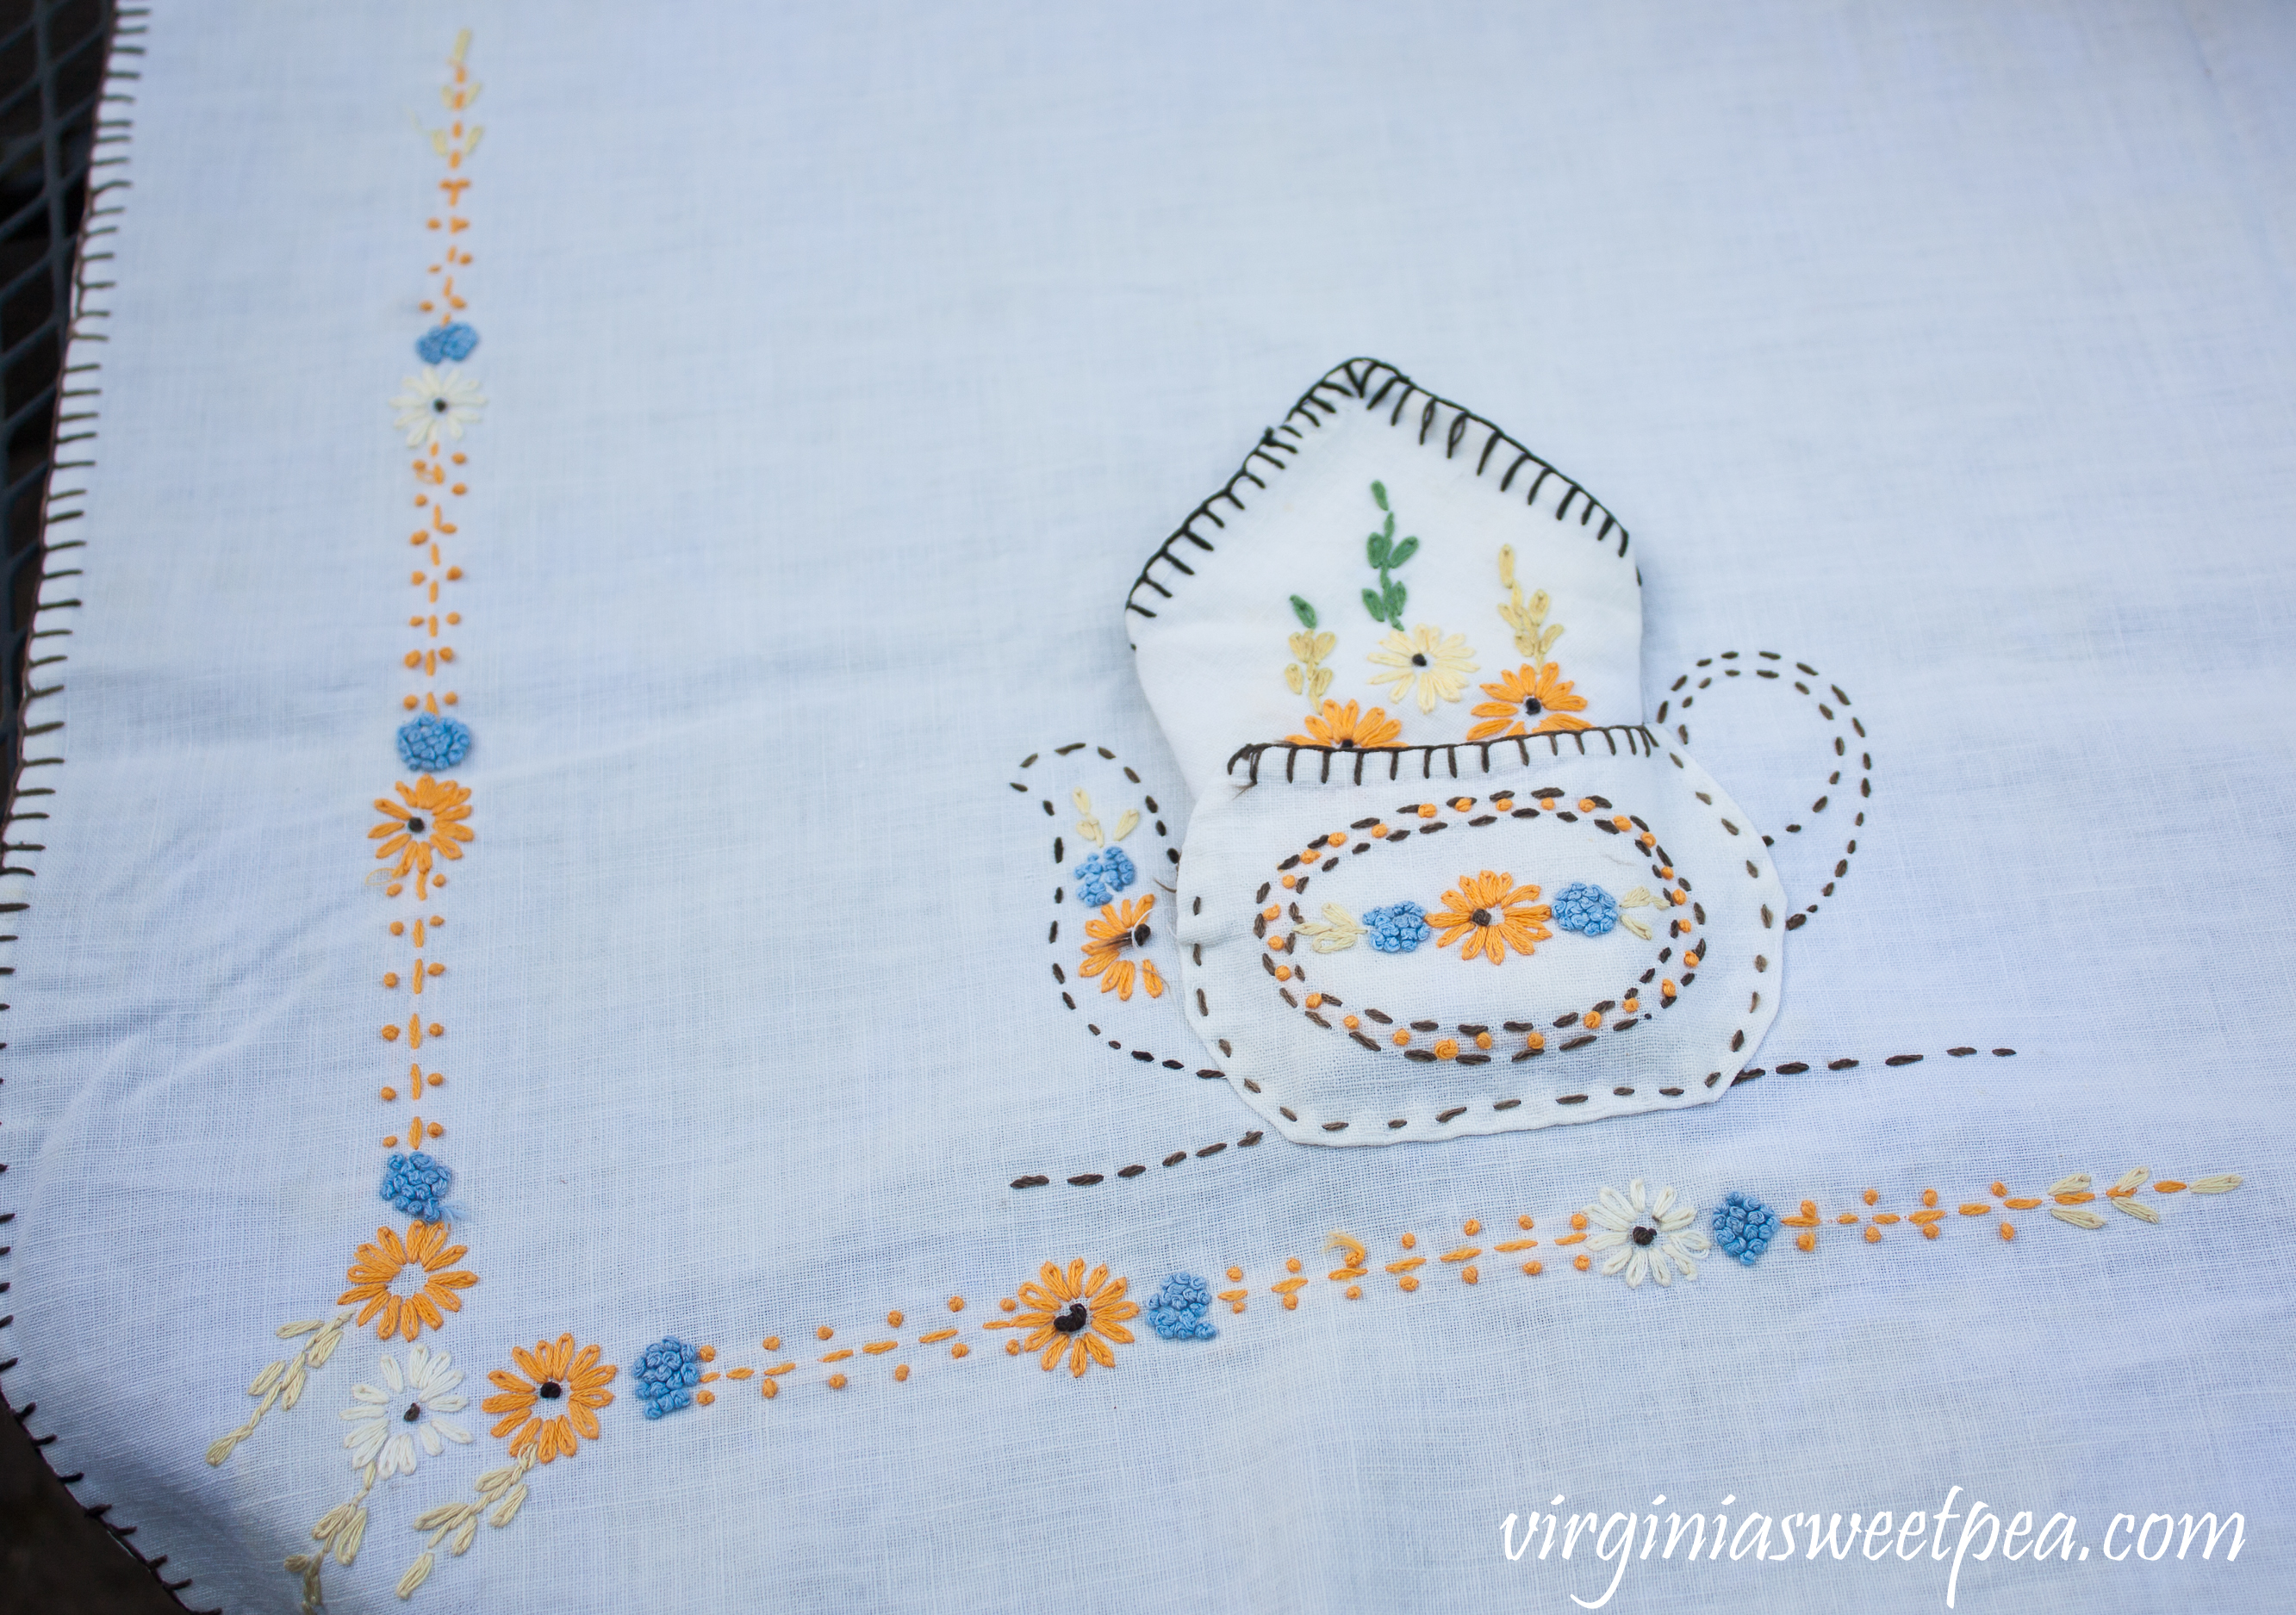 Embroidered Tablecloth from the early 1930's featuring tea pots.